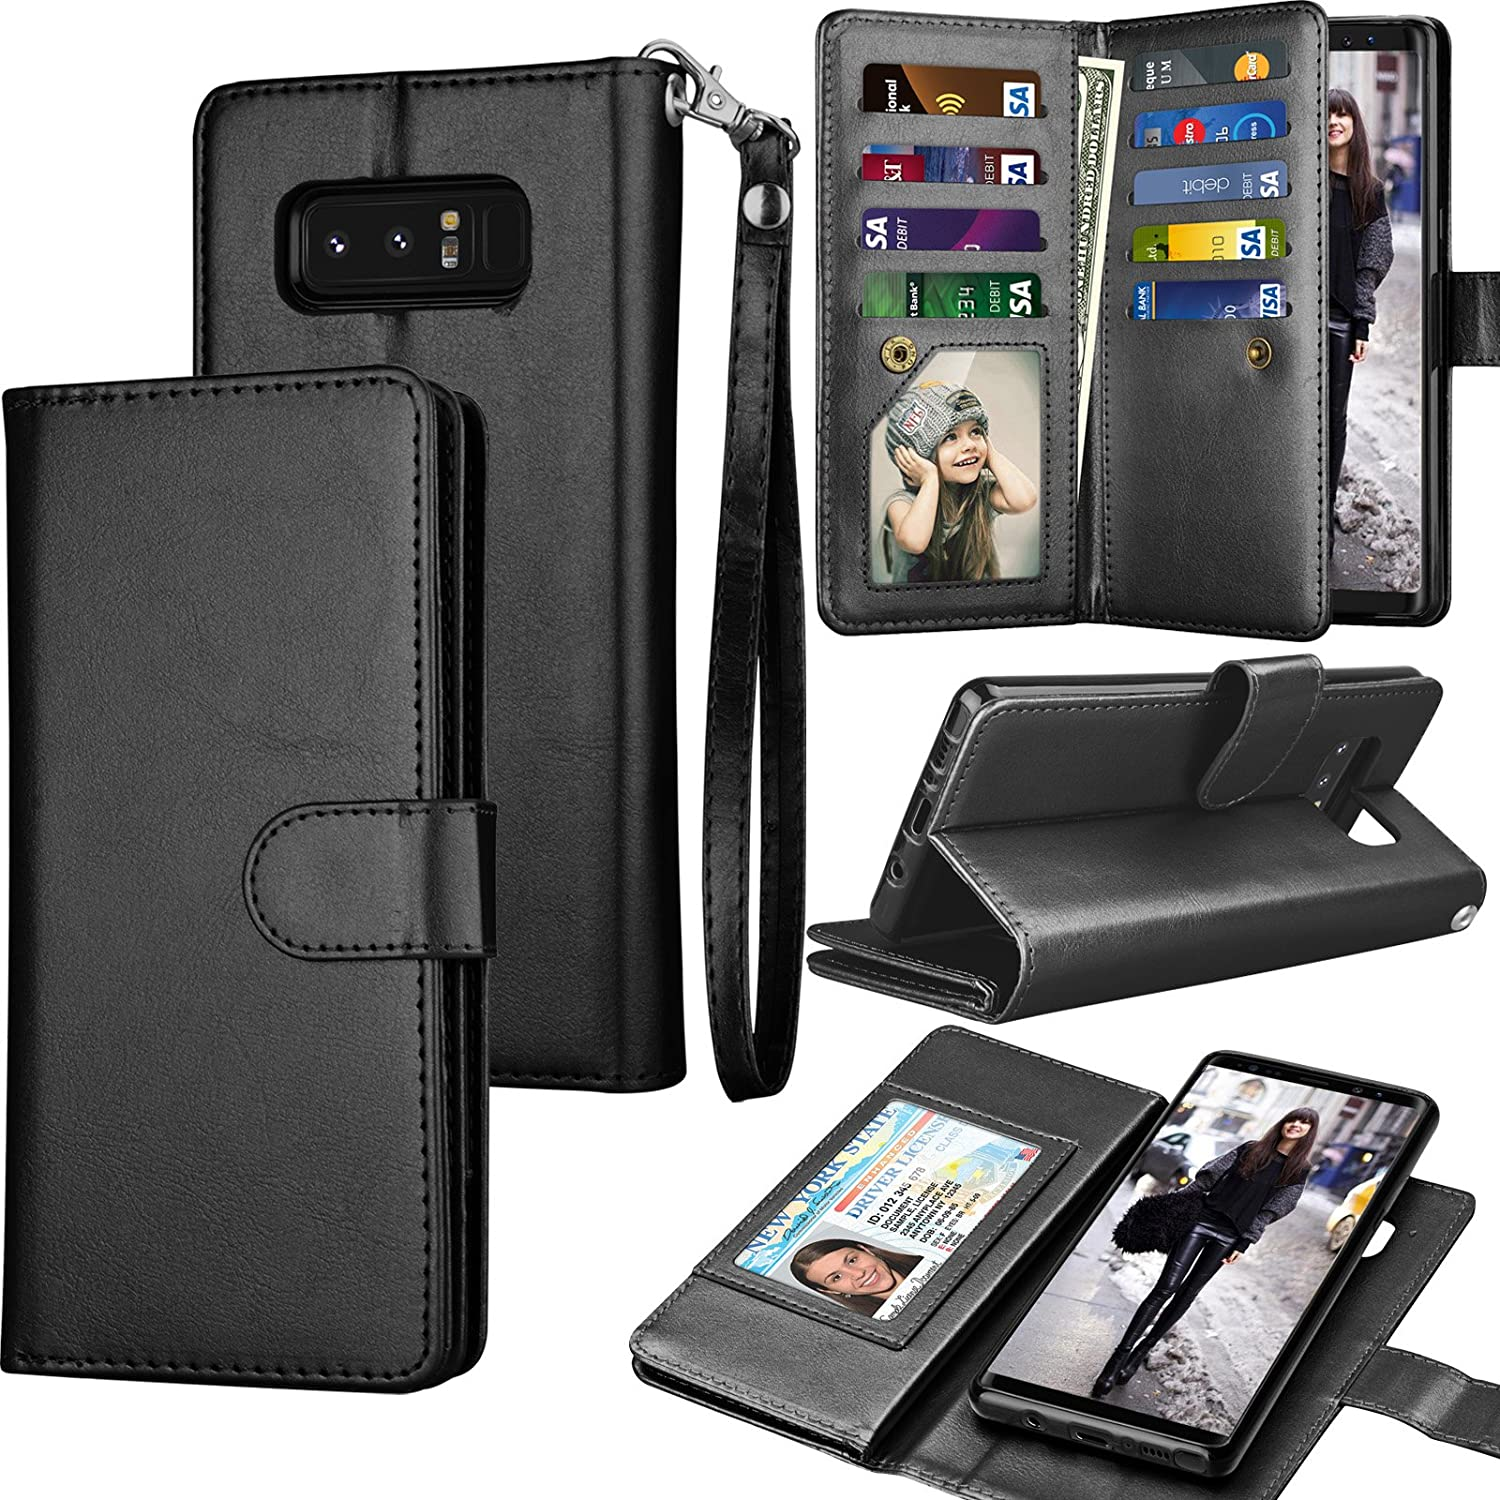 new style e2014 93cfa Tekcoo Compatible for Galaxy Note 8 Wallet Case/Samsung Galaxy Note 8 PU  Leather Case, Luxury ID Cash Credit Card Slots Holder Carrying Flip Cover  ...